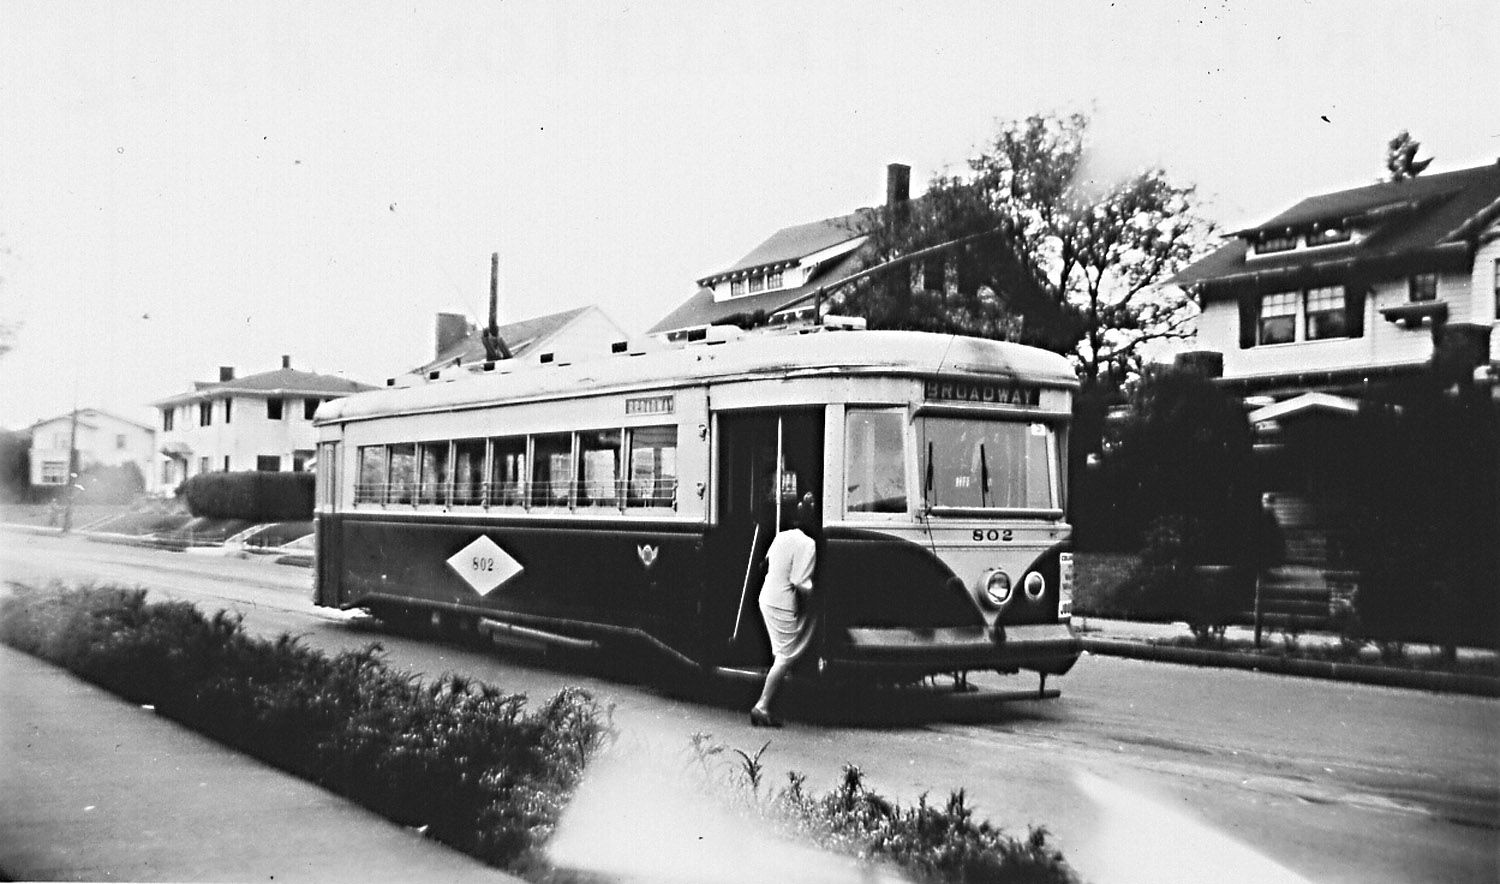 A Brill Master Unit at the north end of the Broadway Line, 1949.